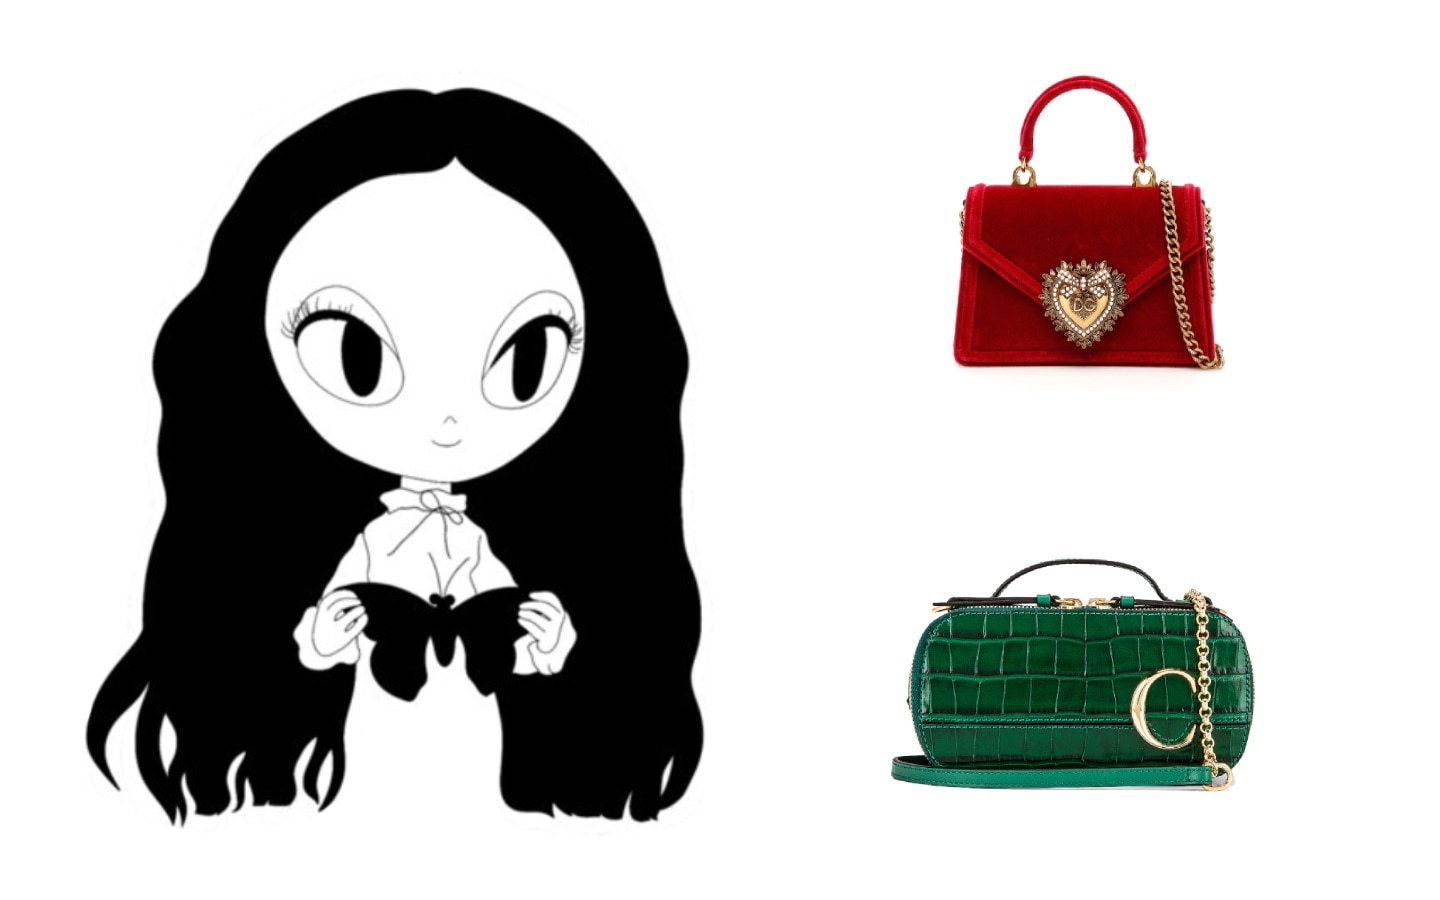 Designer Bags From IOTNBO